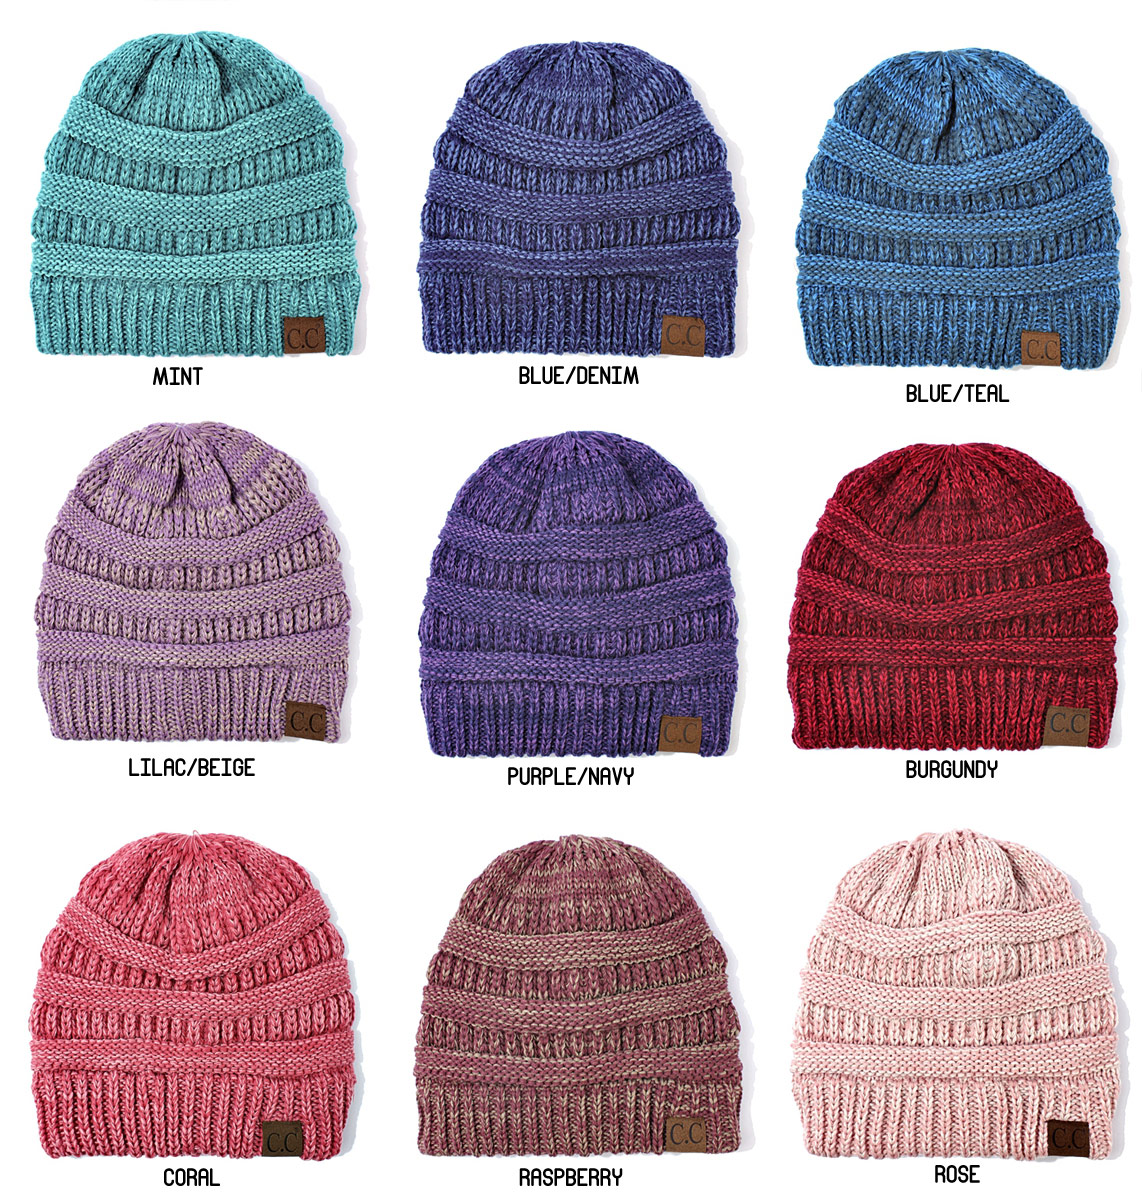 0a7330ffcaf Two Tone Knit Beanie Hat from CC Brand inset 1 ...